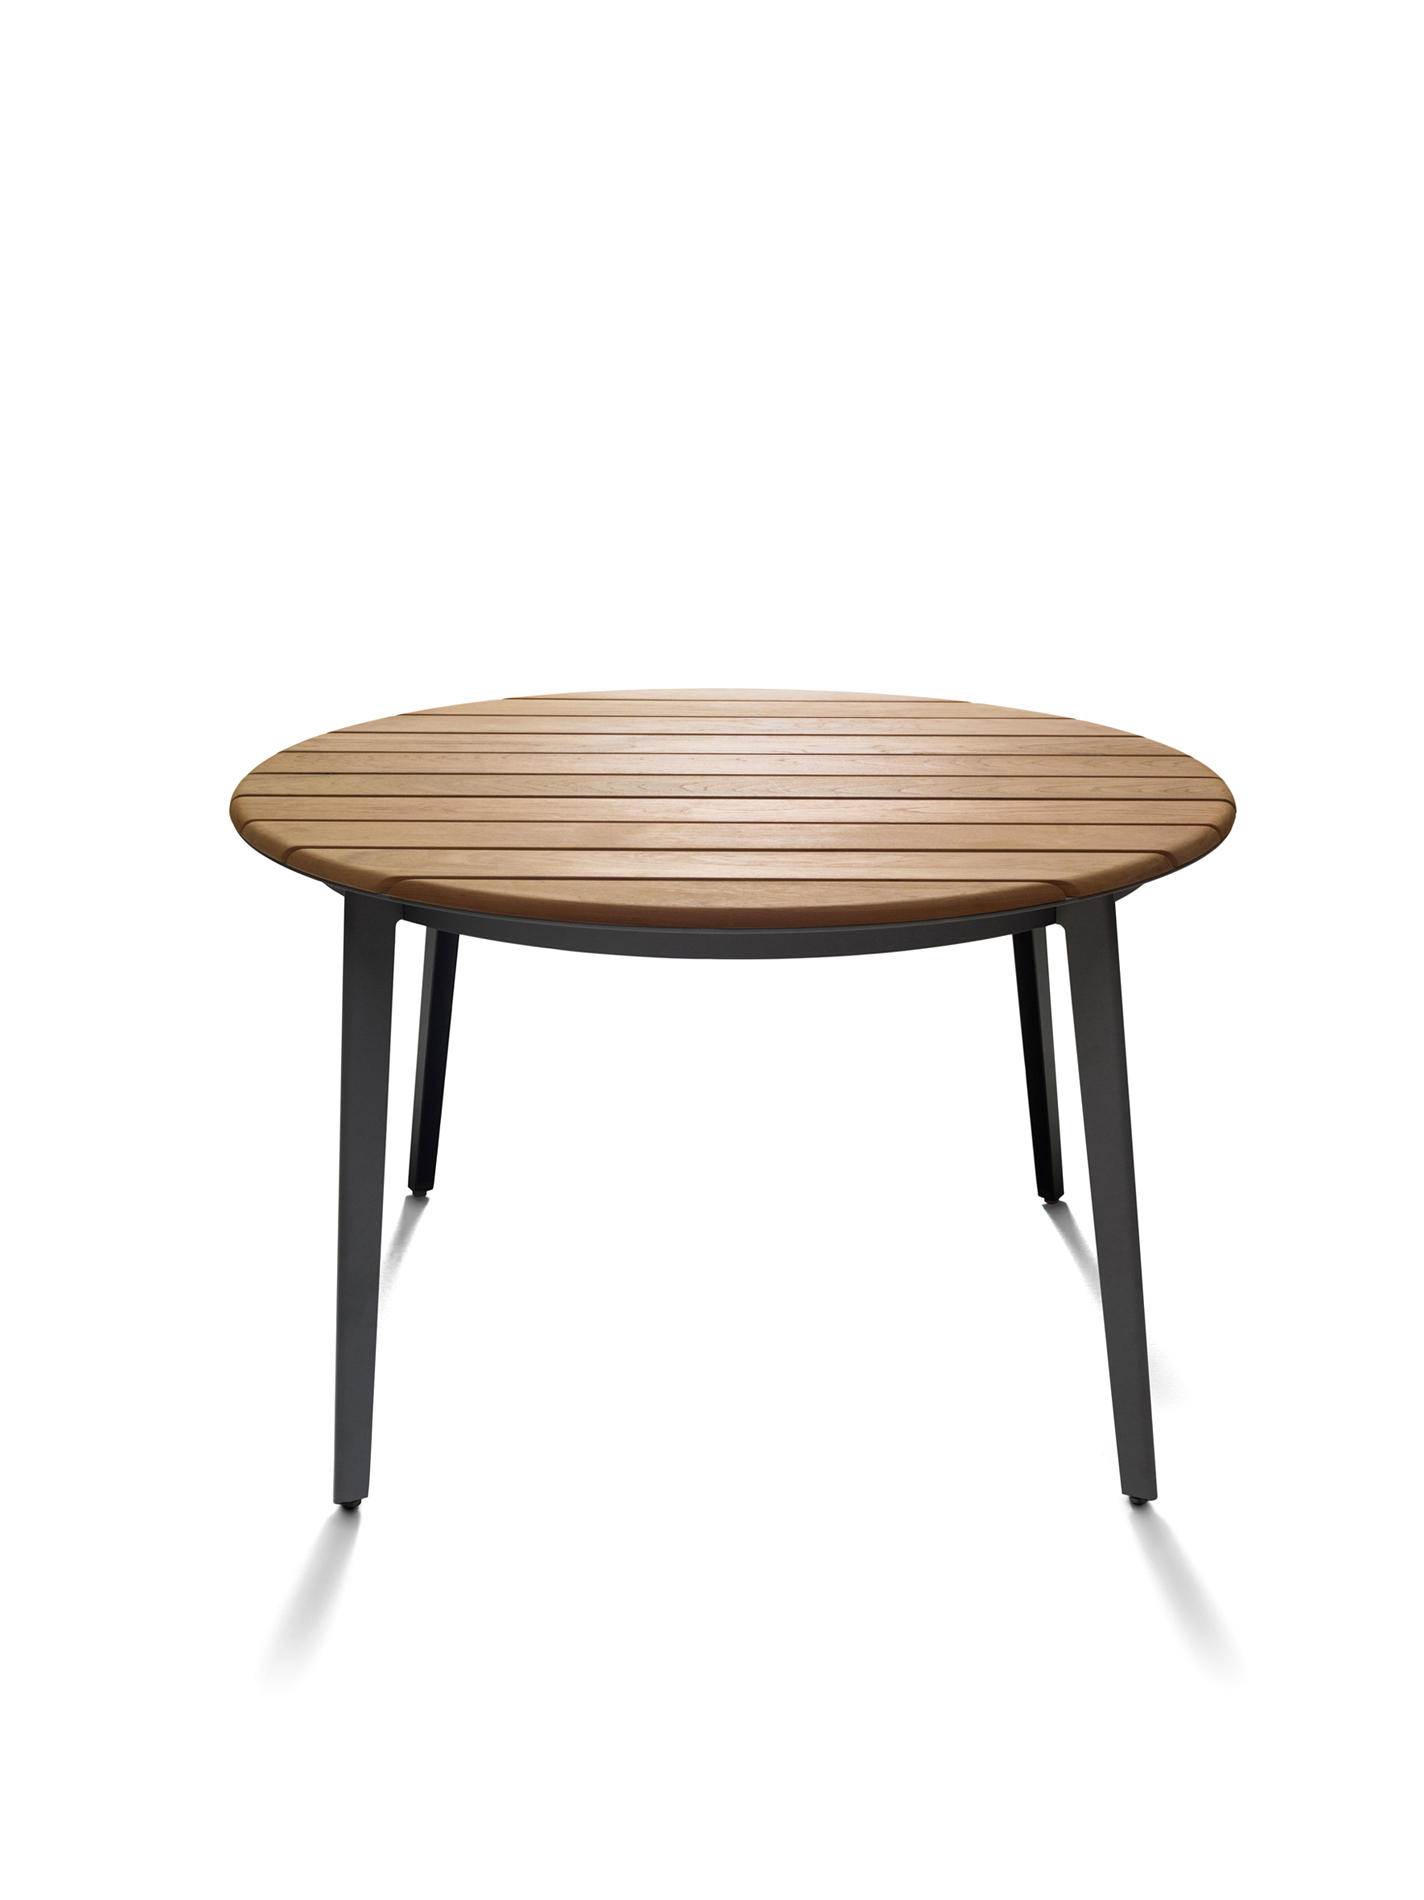 RAILWAY OUTDOOR - Dining tables from De Padova | Architonic